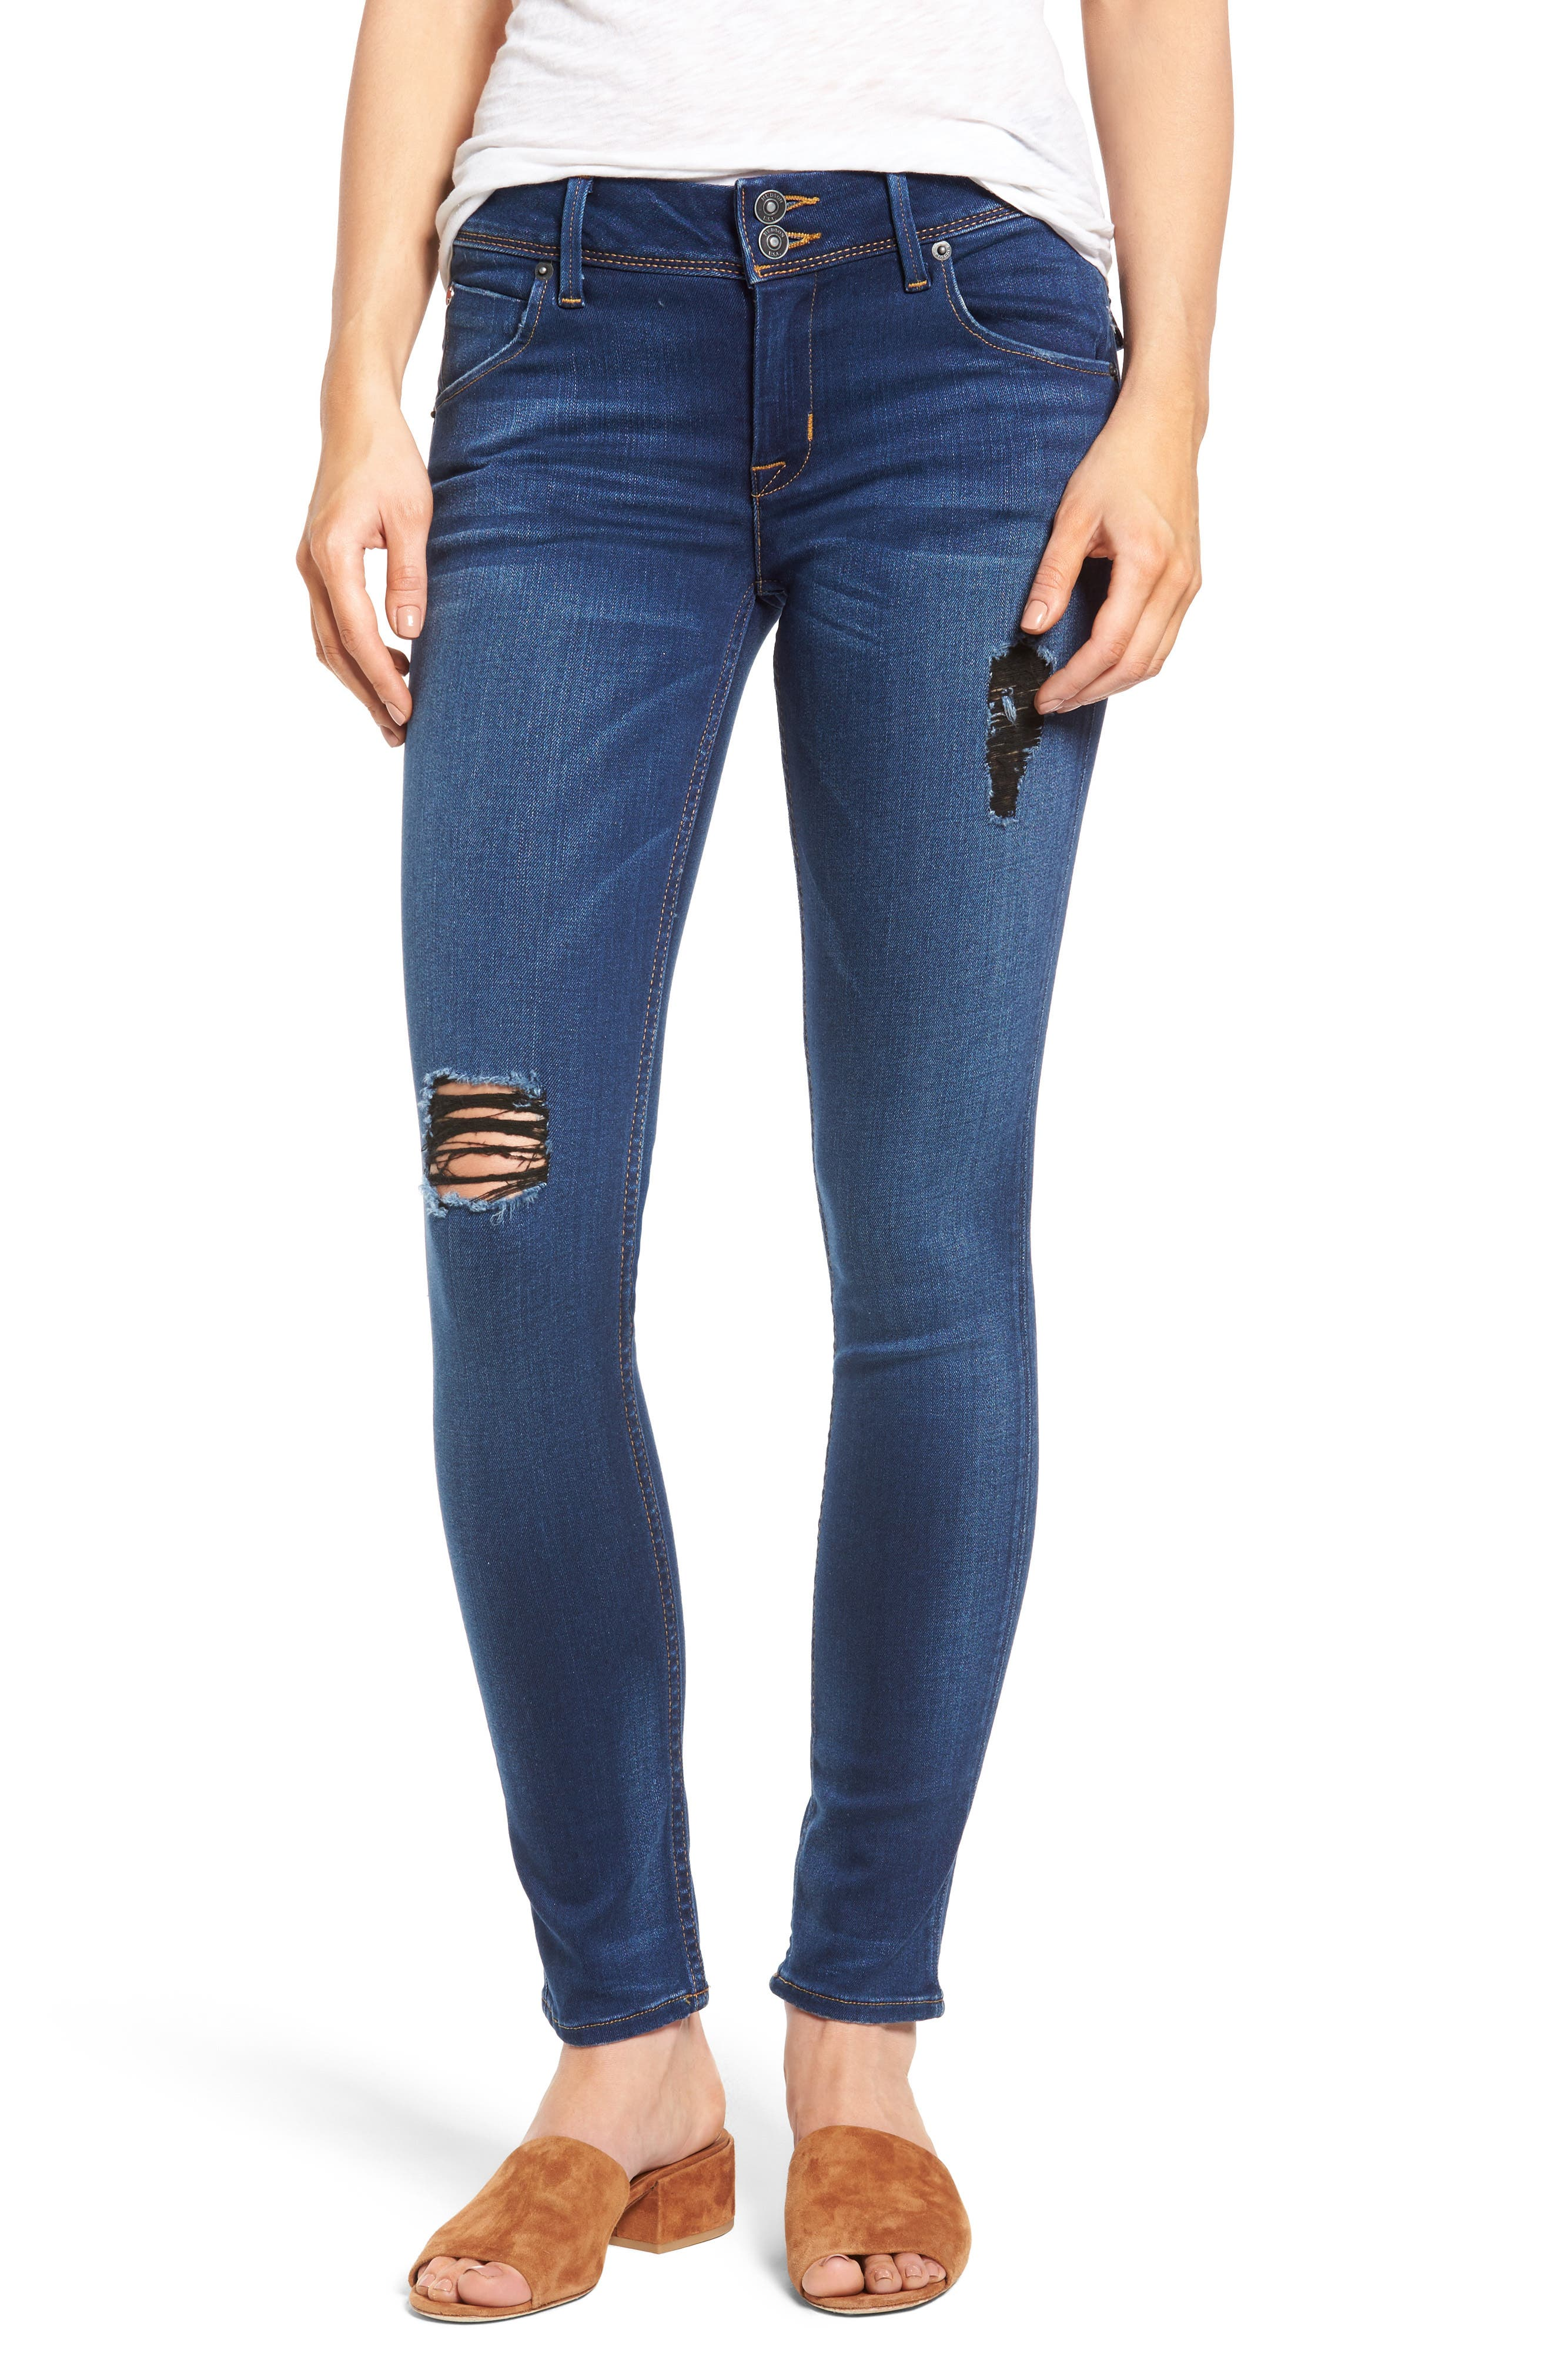 Alternate Image 1 Selected - Hudson Jeans 'Elysian - Collin' Mid Rise Skinny Jeans (Authentic)